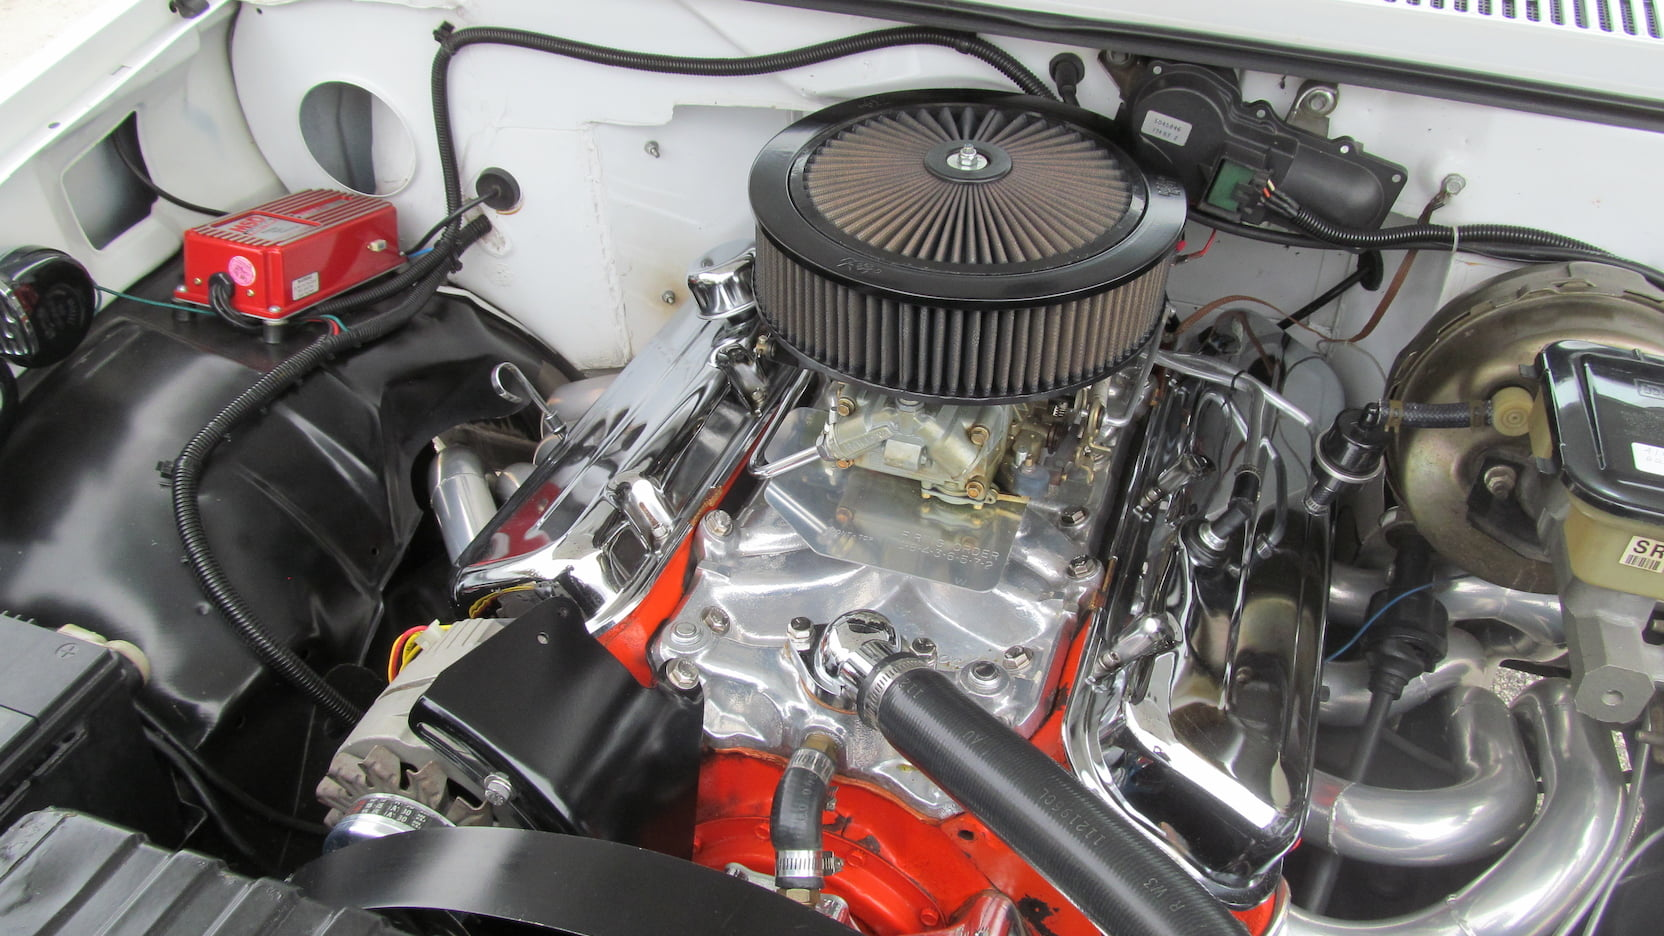 1987 Chevrolet S10 engine